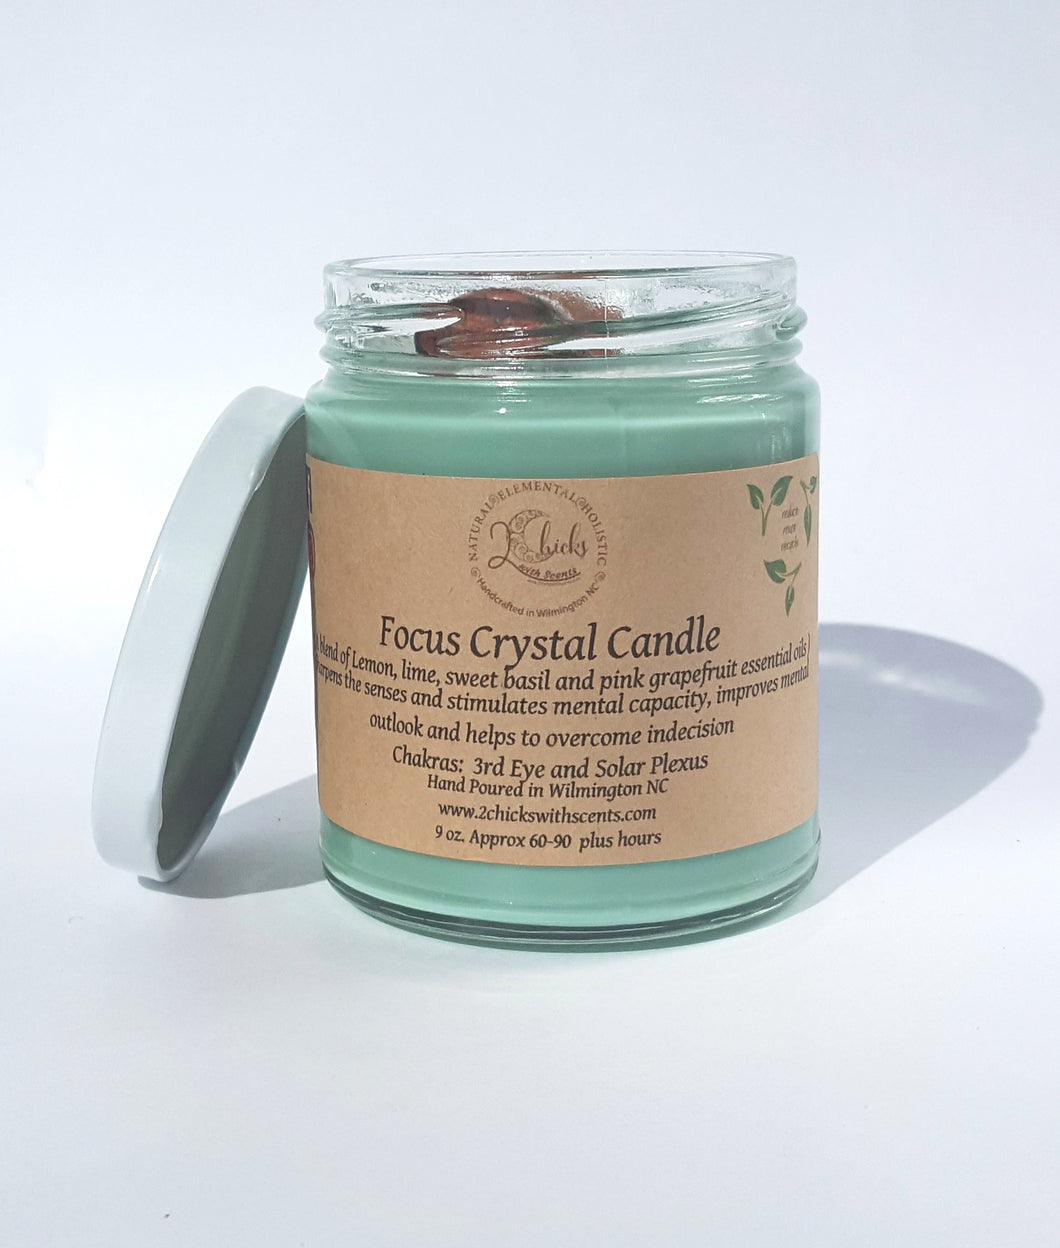 2 Chicks with Scents Focus Crystal Candle with sweet basil, lime, grapefruit, sweet orange